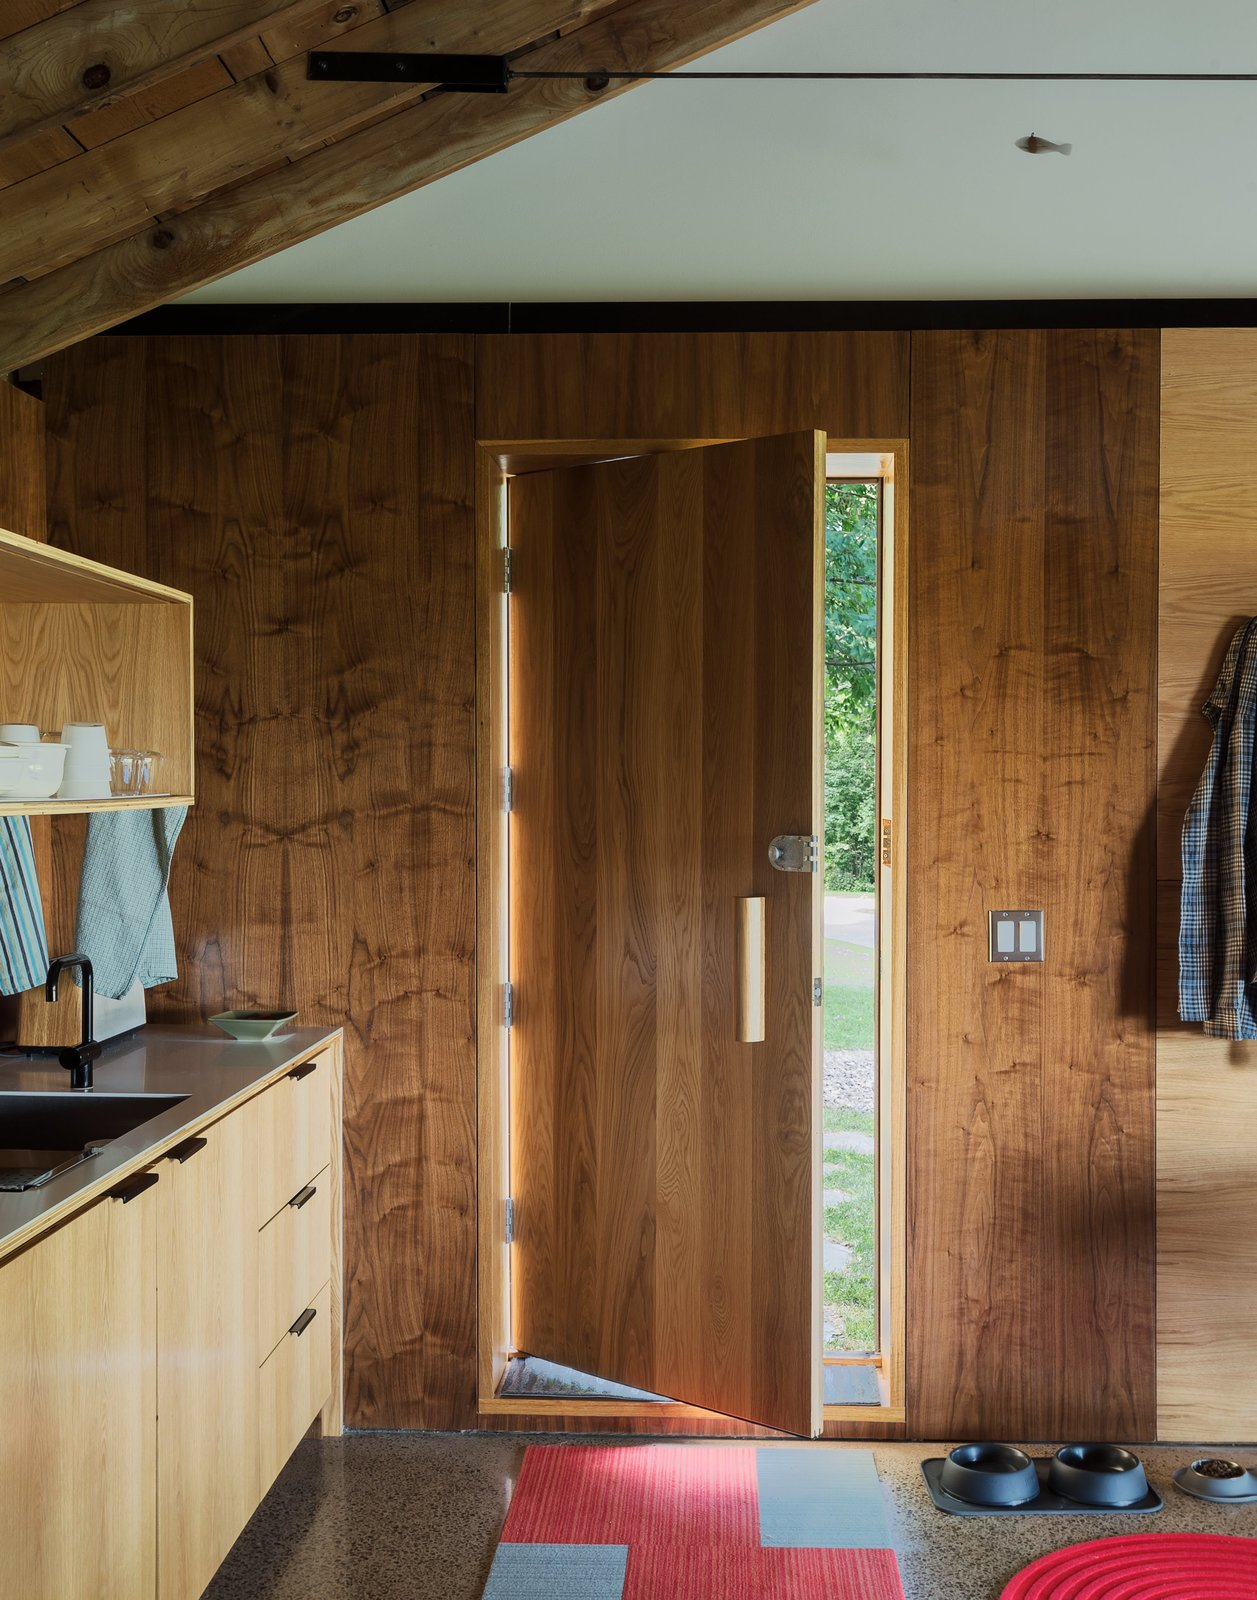 The curve of the door handle follows the golden ratio—the basis for Le Corbusier's Modulor system of proportions. Cottage Industrious - Photo 8 of 8